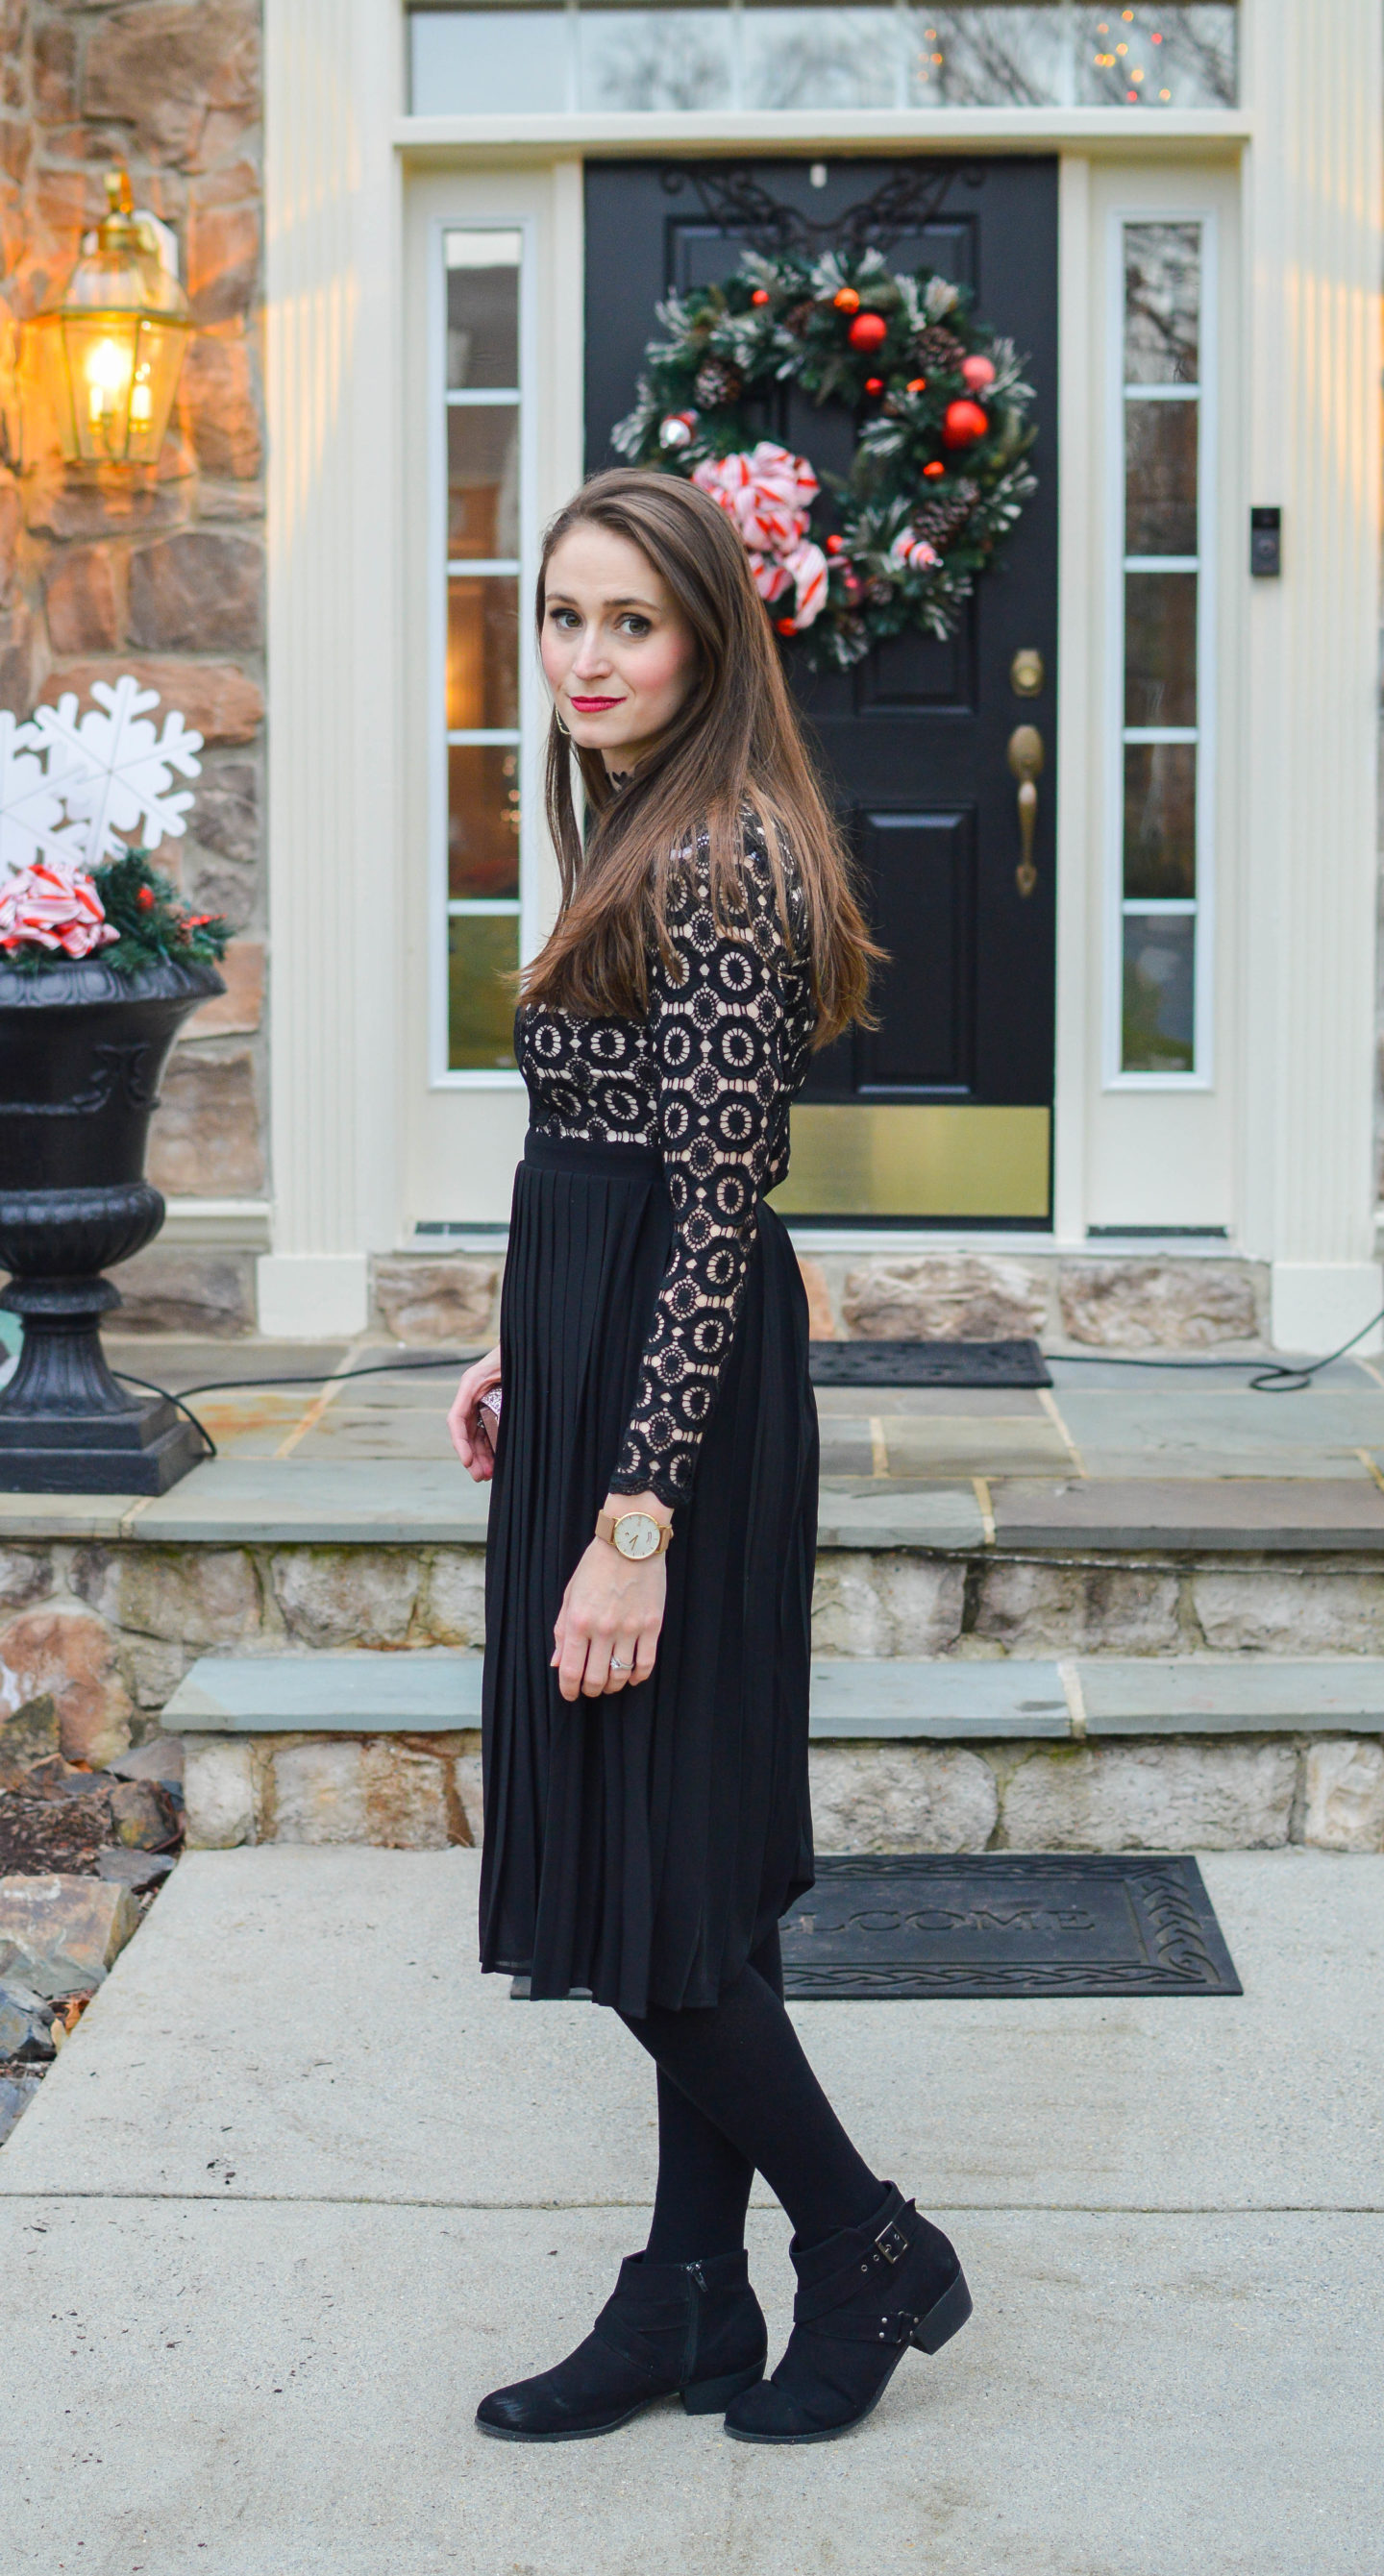 Where to Find New Years Eve Dresses | Breezing Through